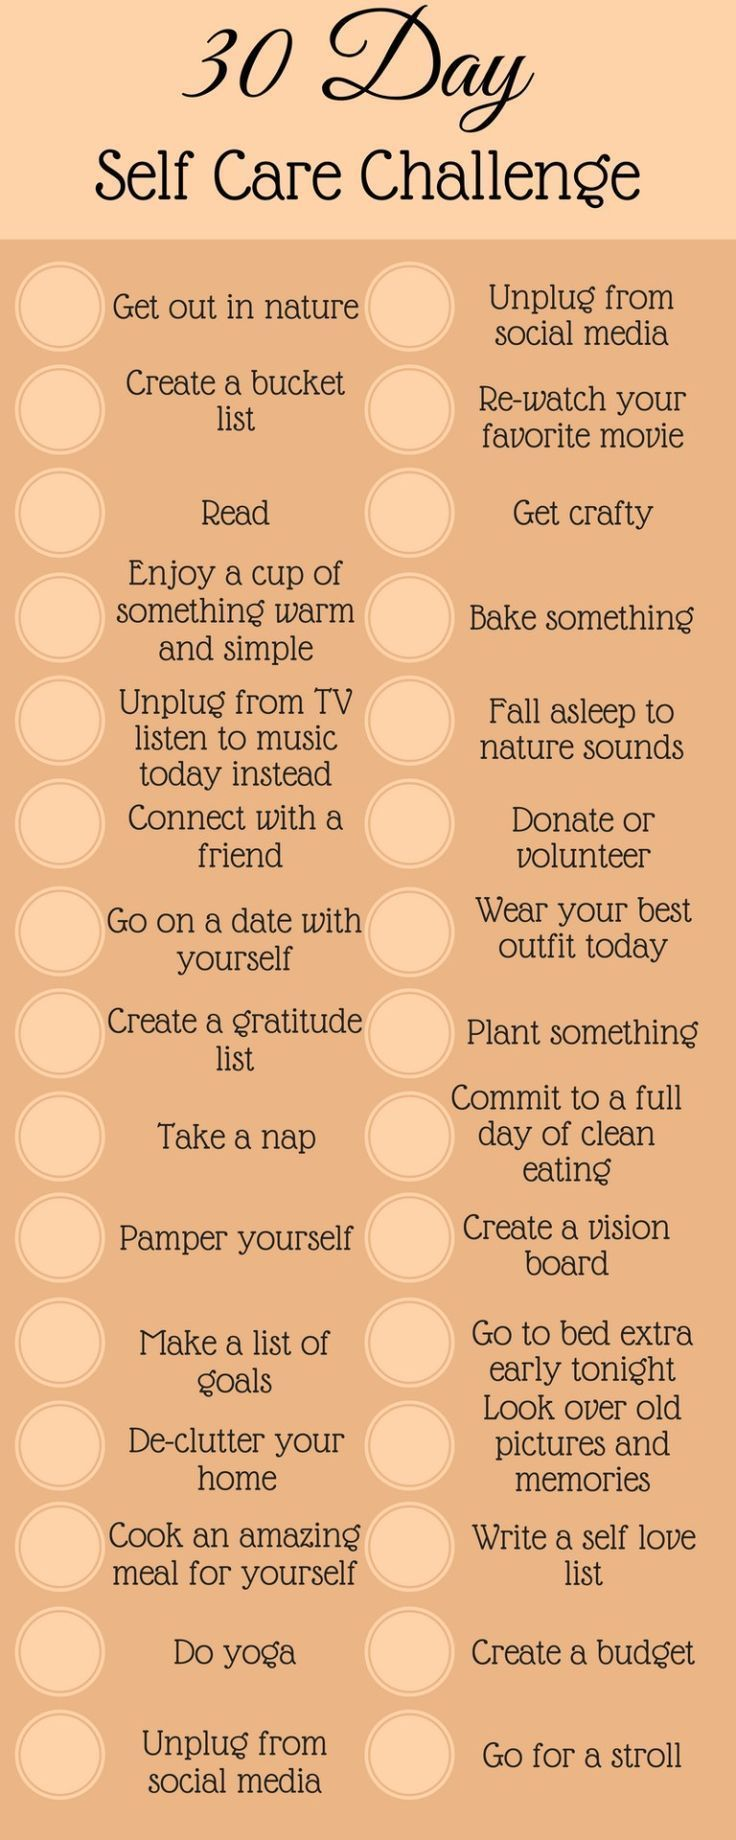 30 Day Self Care Challenge – ScaleitSimple